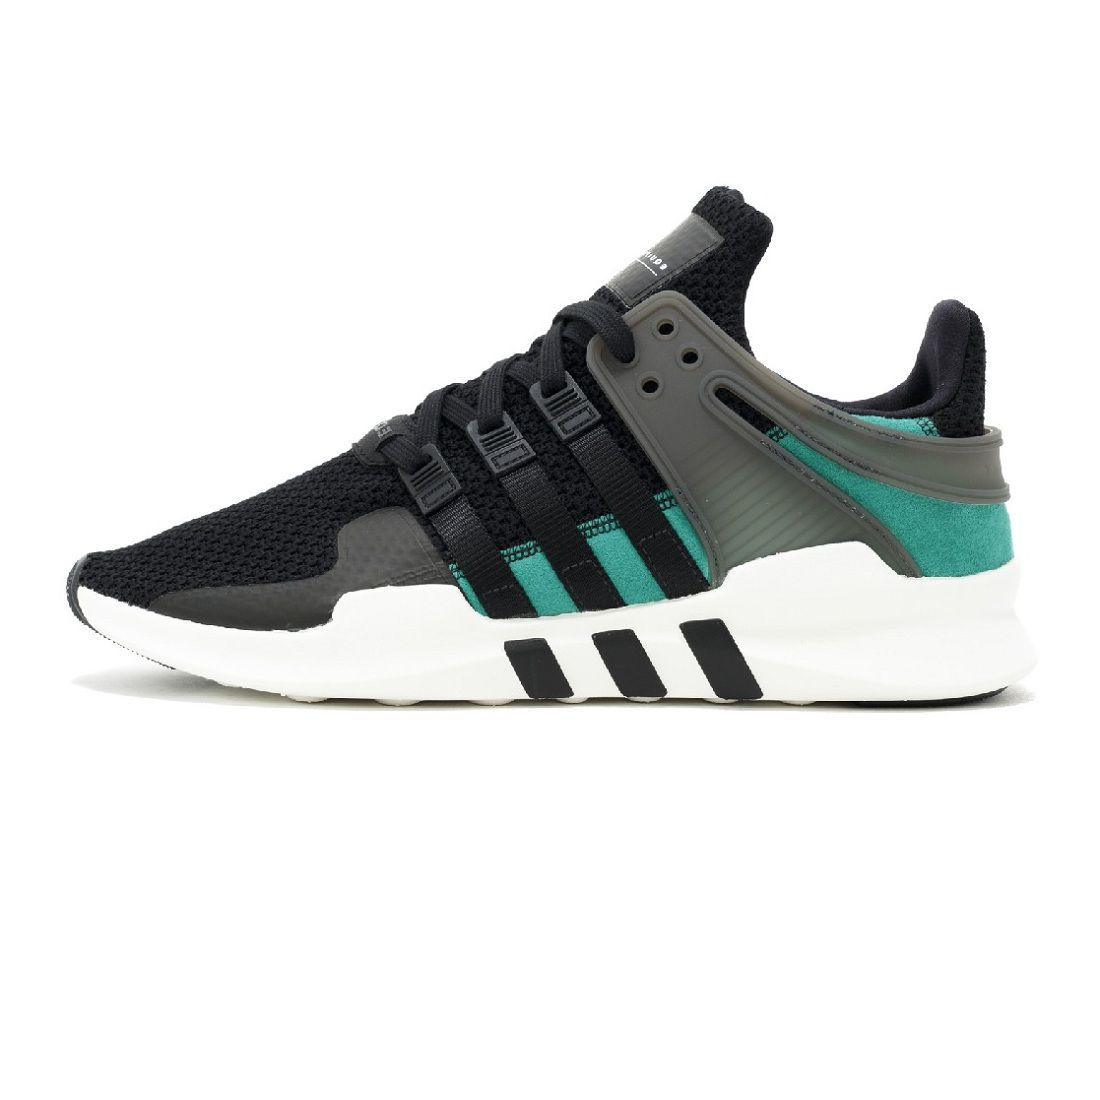 best website 9283f a7afe Adidas EQT Support ADV Gray Running Shoes - Buy Adidas EQT Support ADV Gray  Running Shoes Online at Best Prices in India on Snapdeal